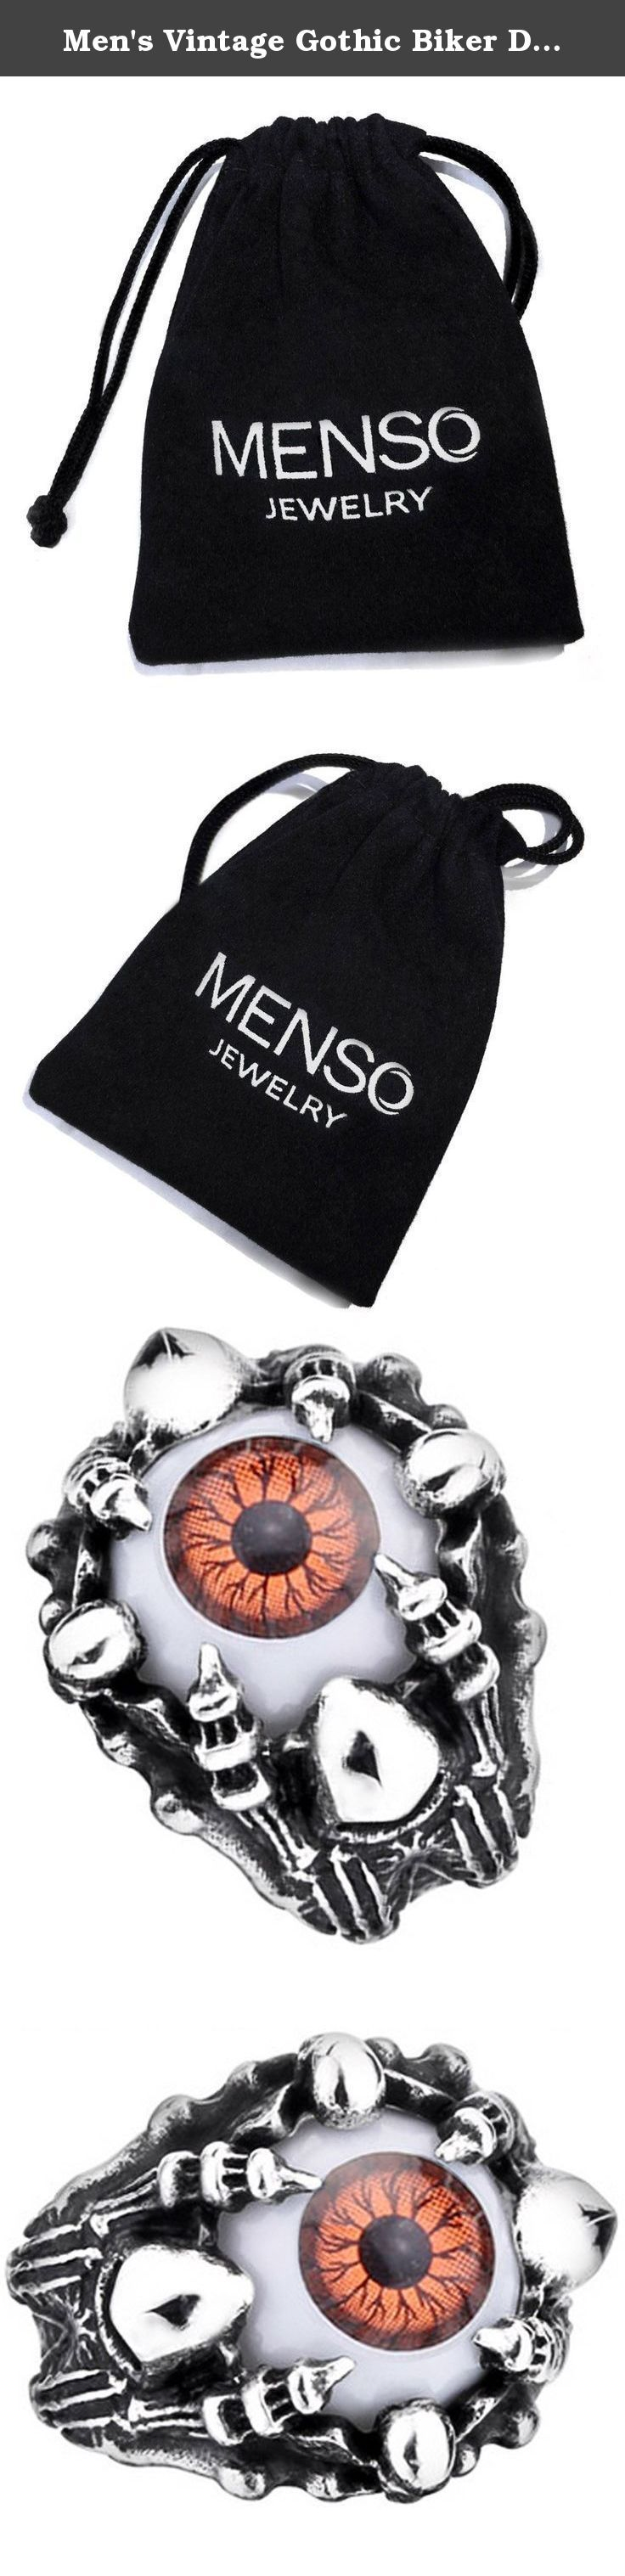 Men's Vintage Gothic Biker Dragon Claw Evil Devil Eye Skull Stainless Steel Ring Brown White Black Silver Size 12. MENSO - High quality Jewelry Discover the MENSO Collection of jewelry. The selection of high-quality jewelry featured in the MENSO Collection offers Great values at affordable Price, they mainly made of high quality Stainless Steel, Tungsten, Silver and Leather. We uphold the highest standard of integrity,professionalism and customer service. In addition to unique...